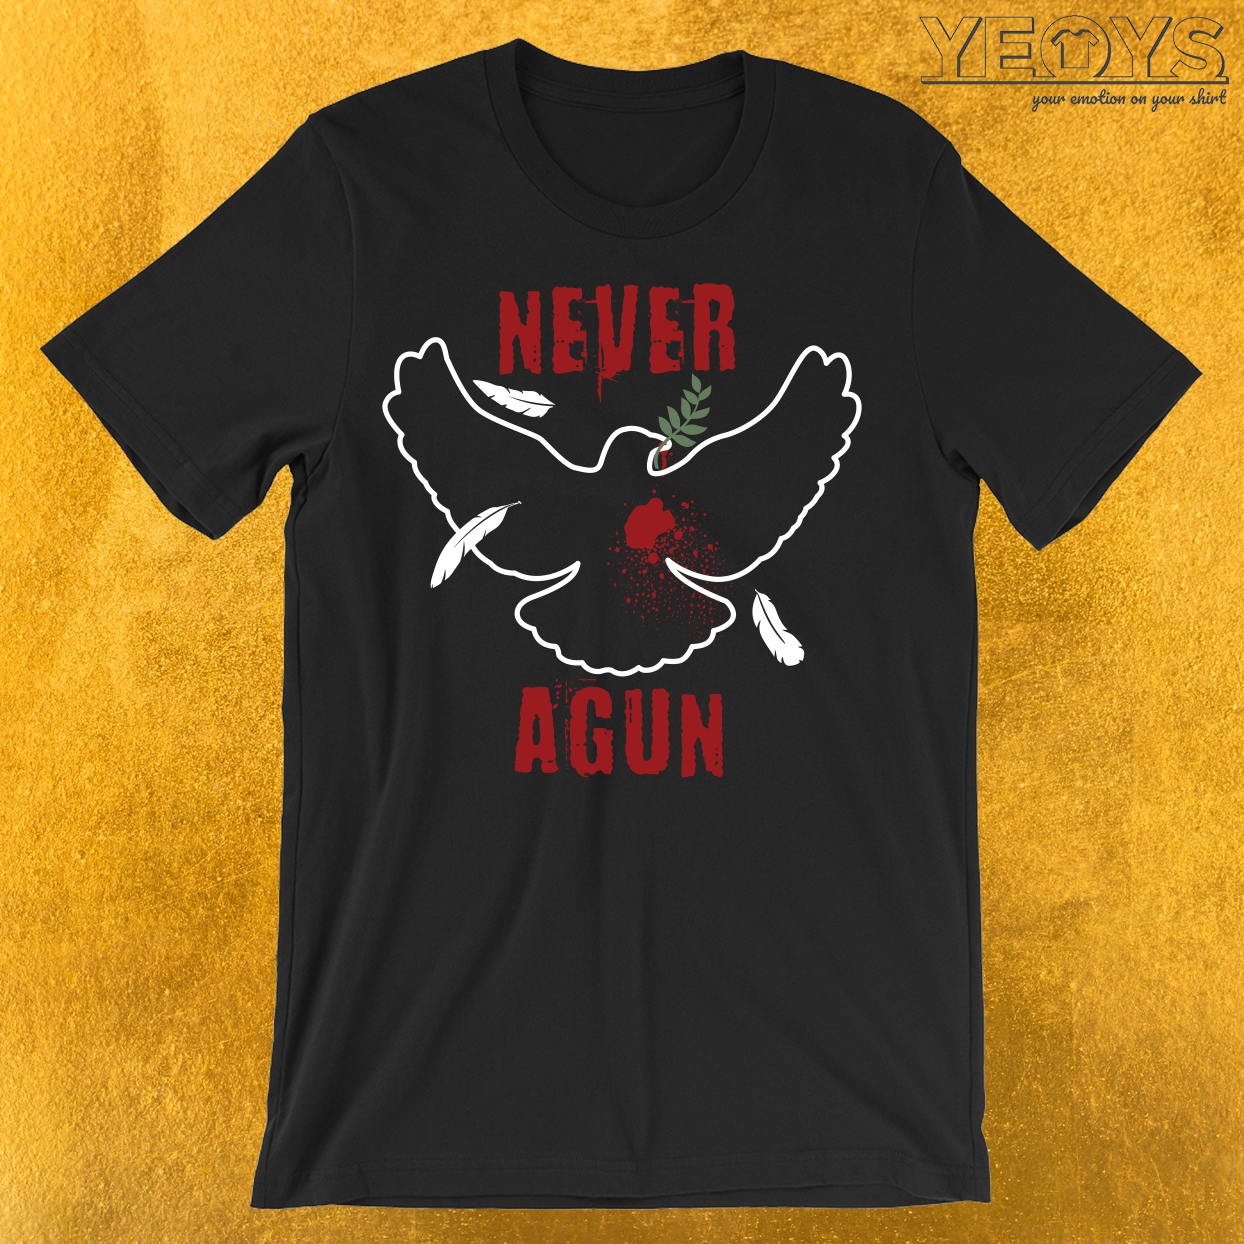 Never Agun T-Shirt